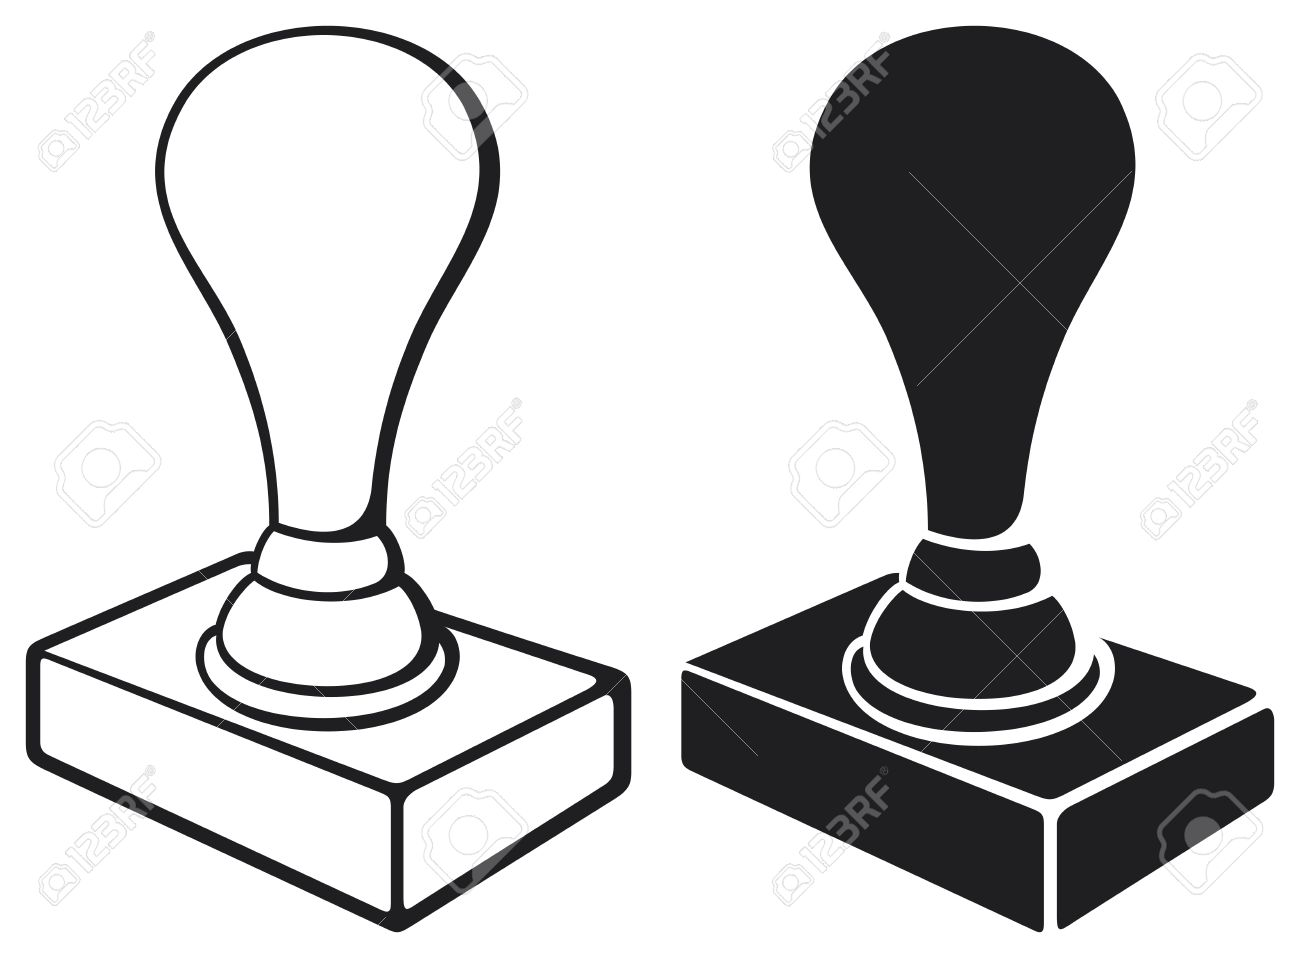 Black Stamp Isolated On White Background Rubber Office Stock Vector